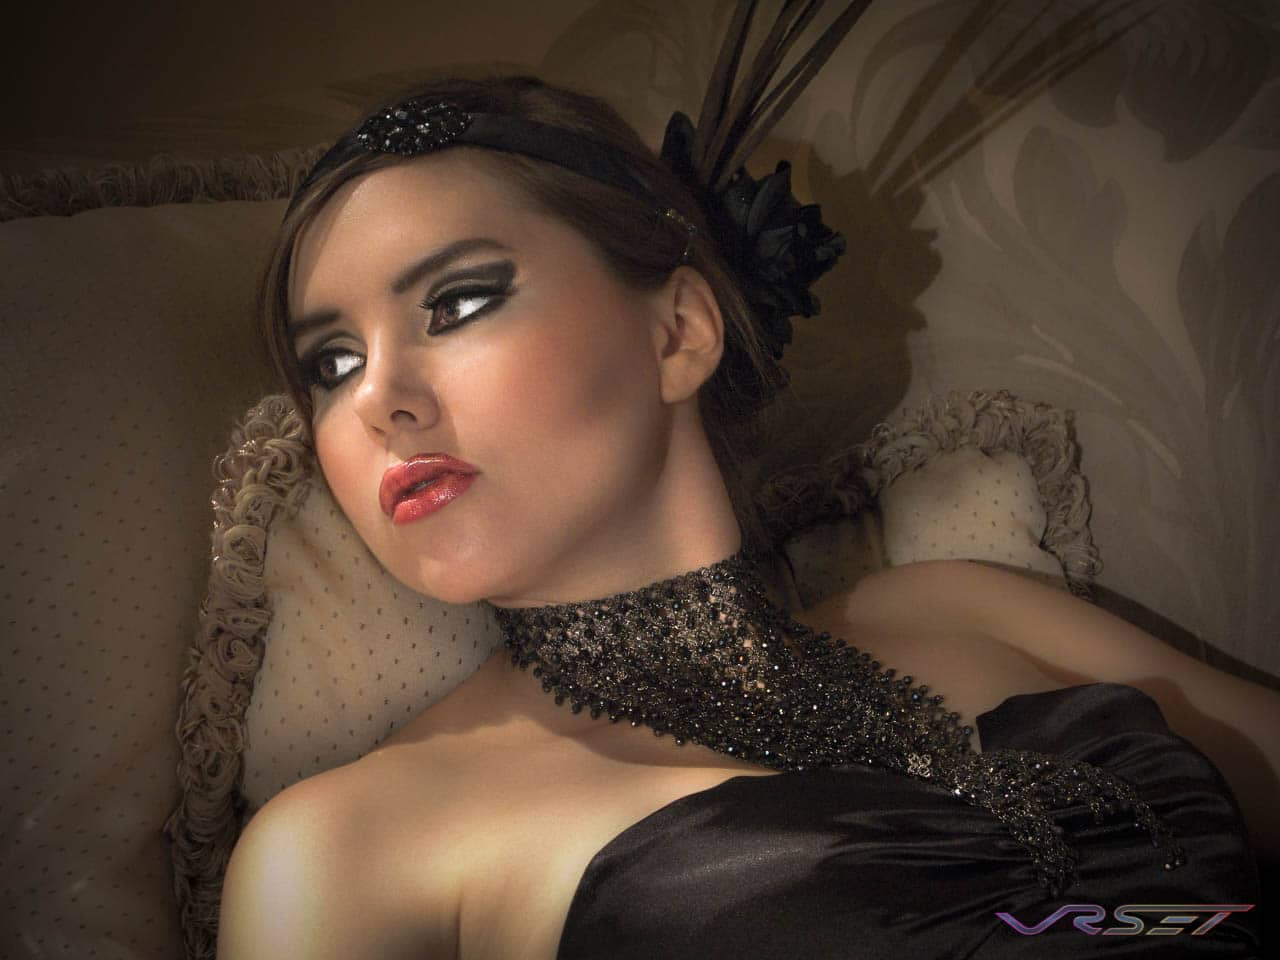 reclining glamor photo female model ornate neck piece